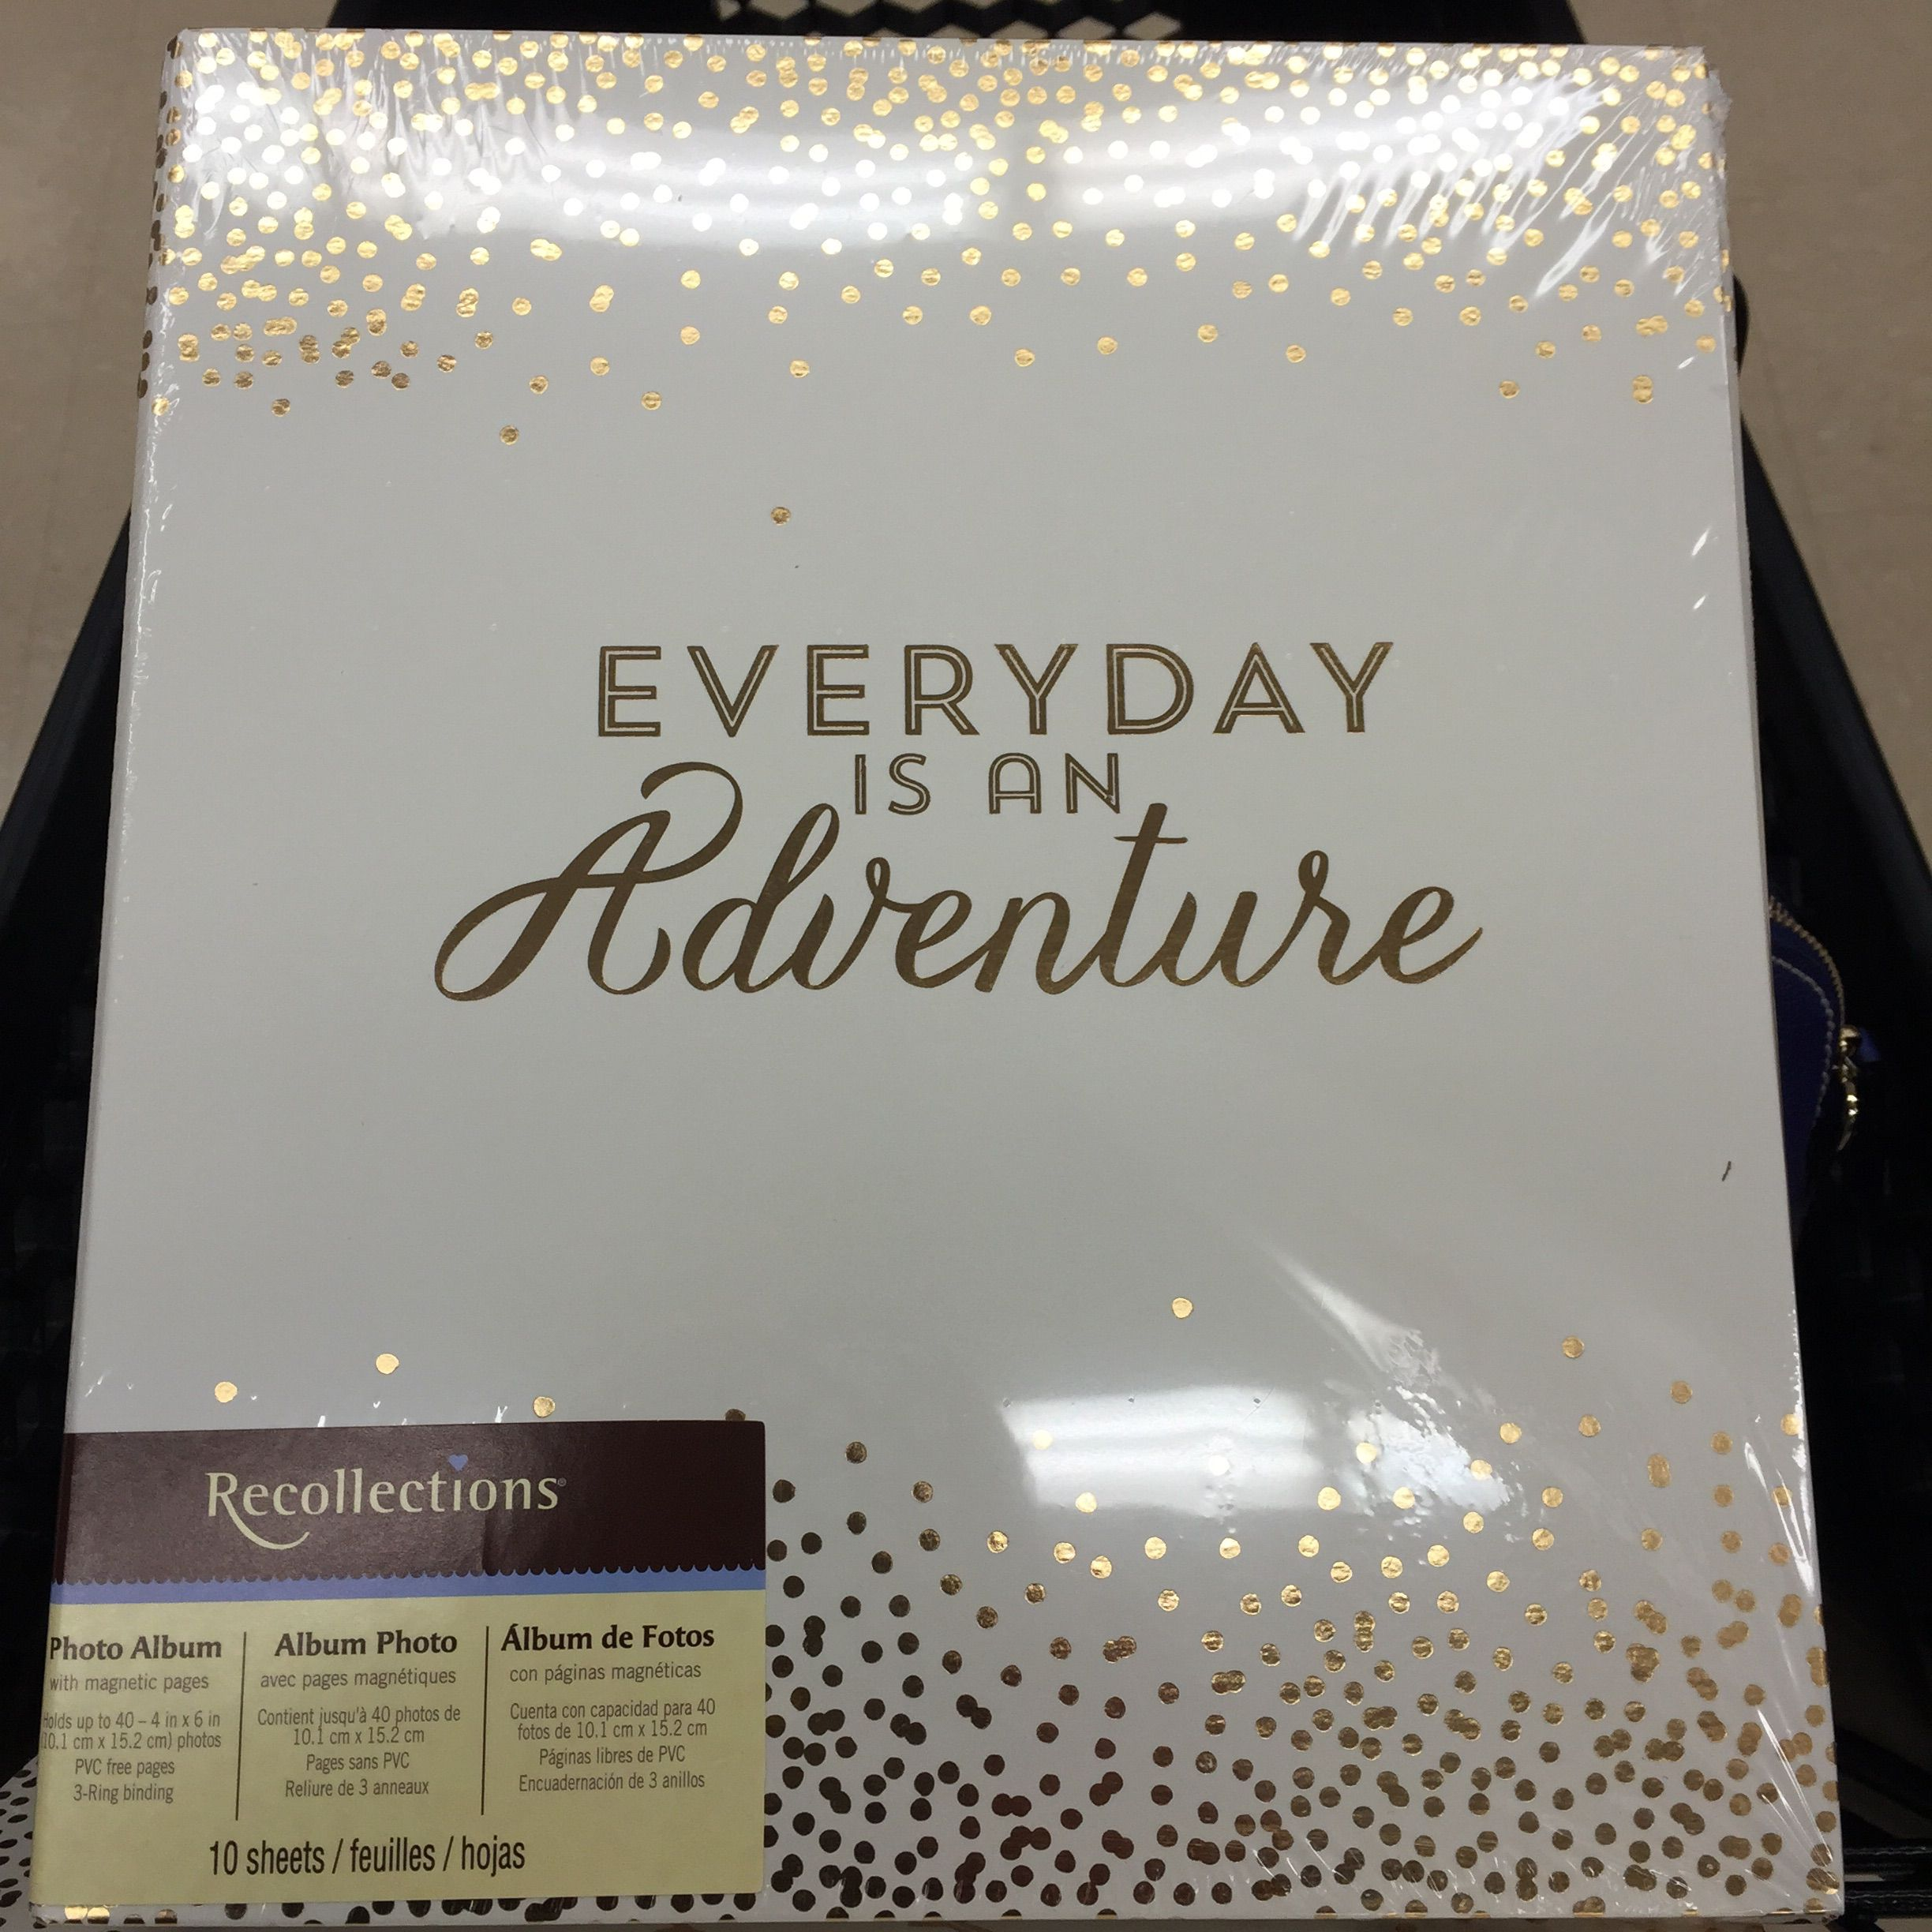 Recollections 3 ring binder found at Michaels